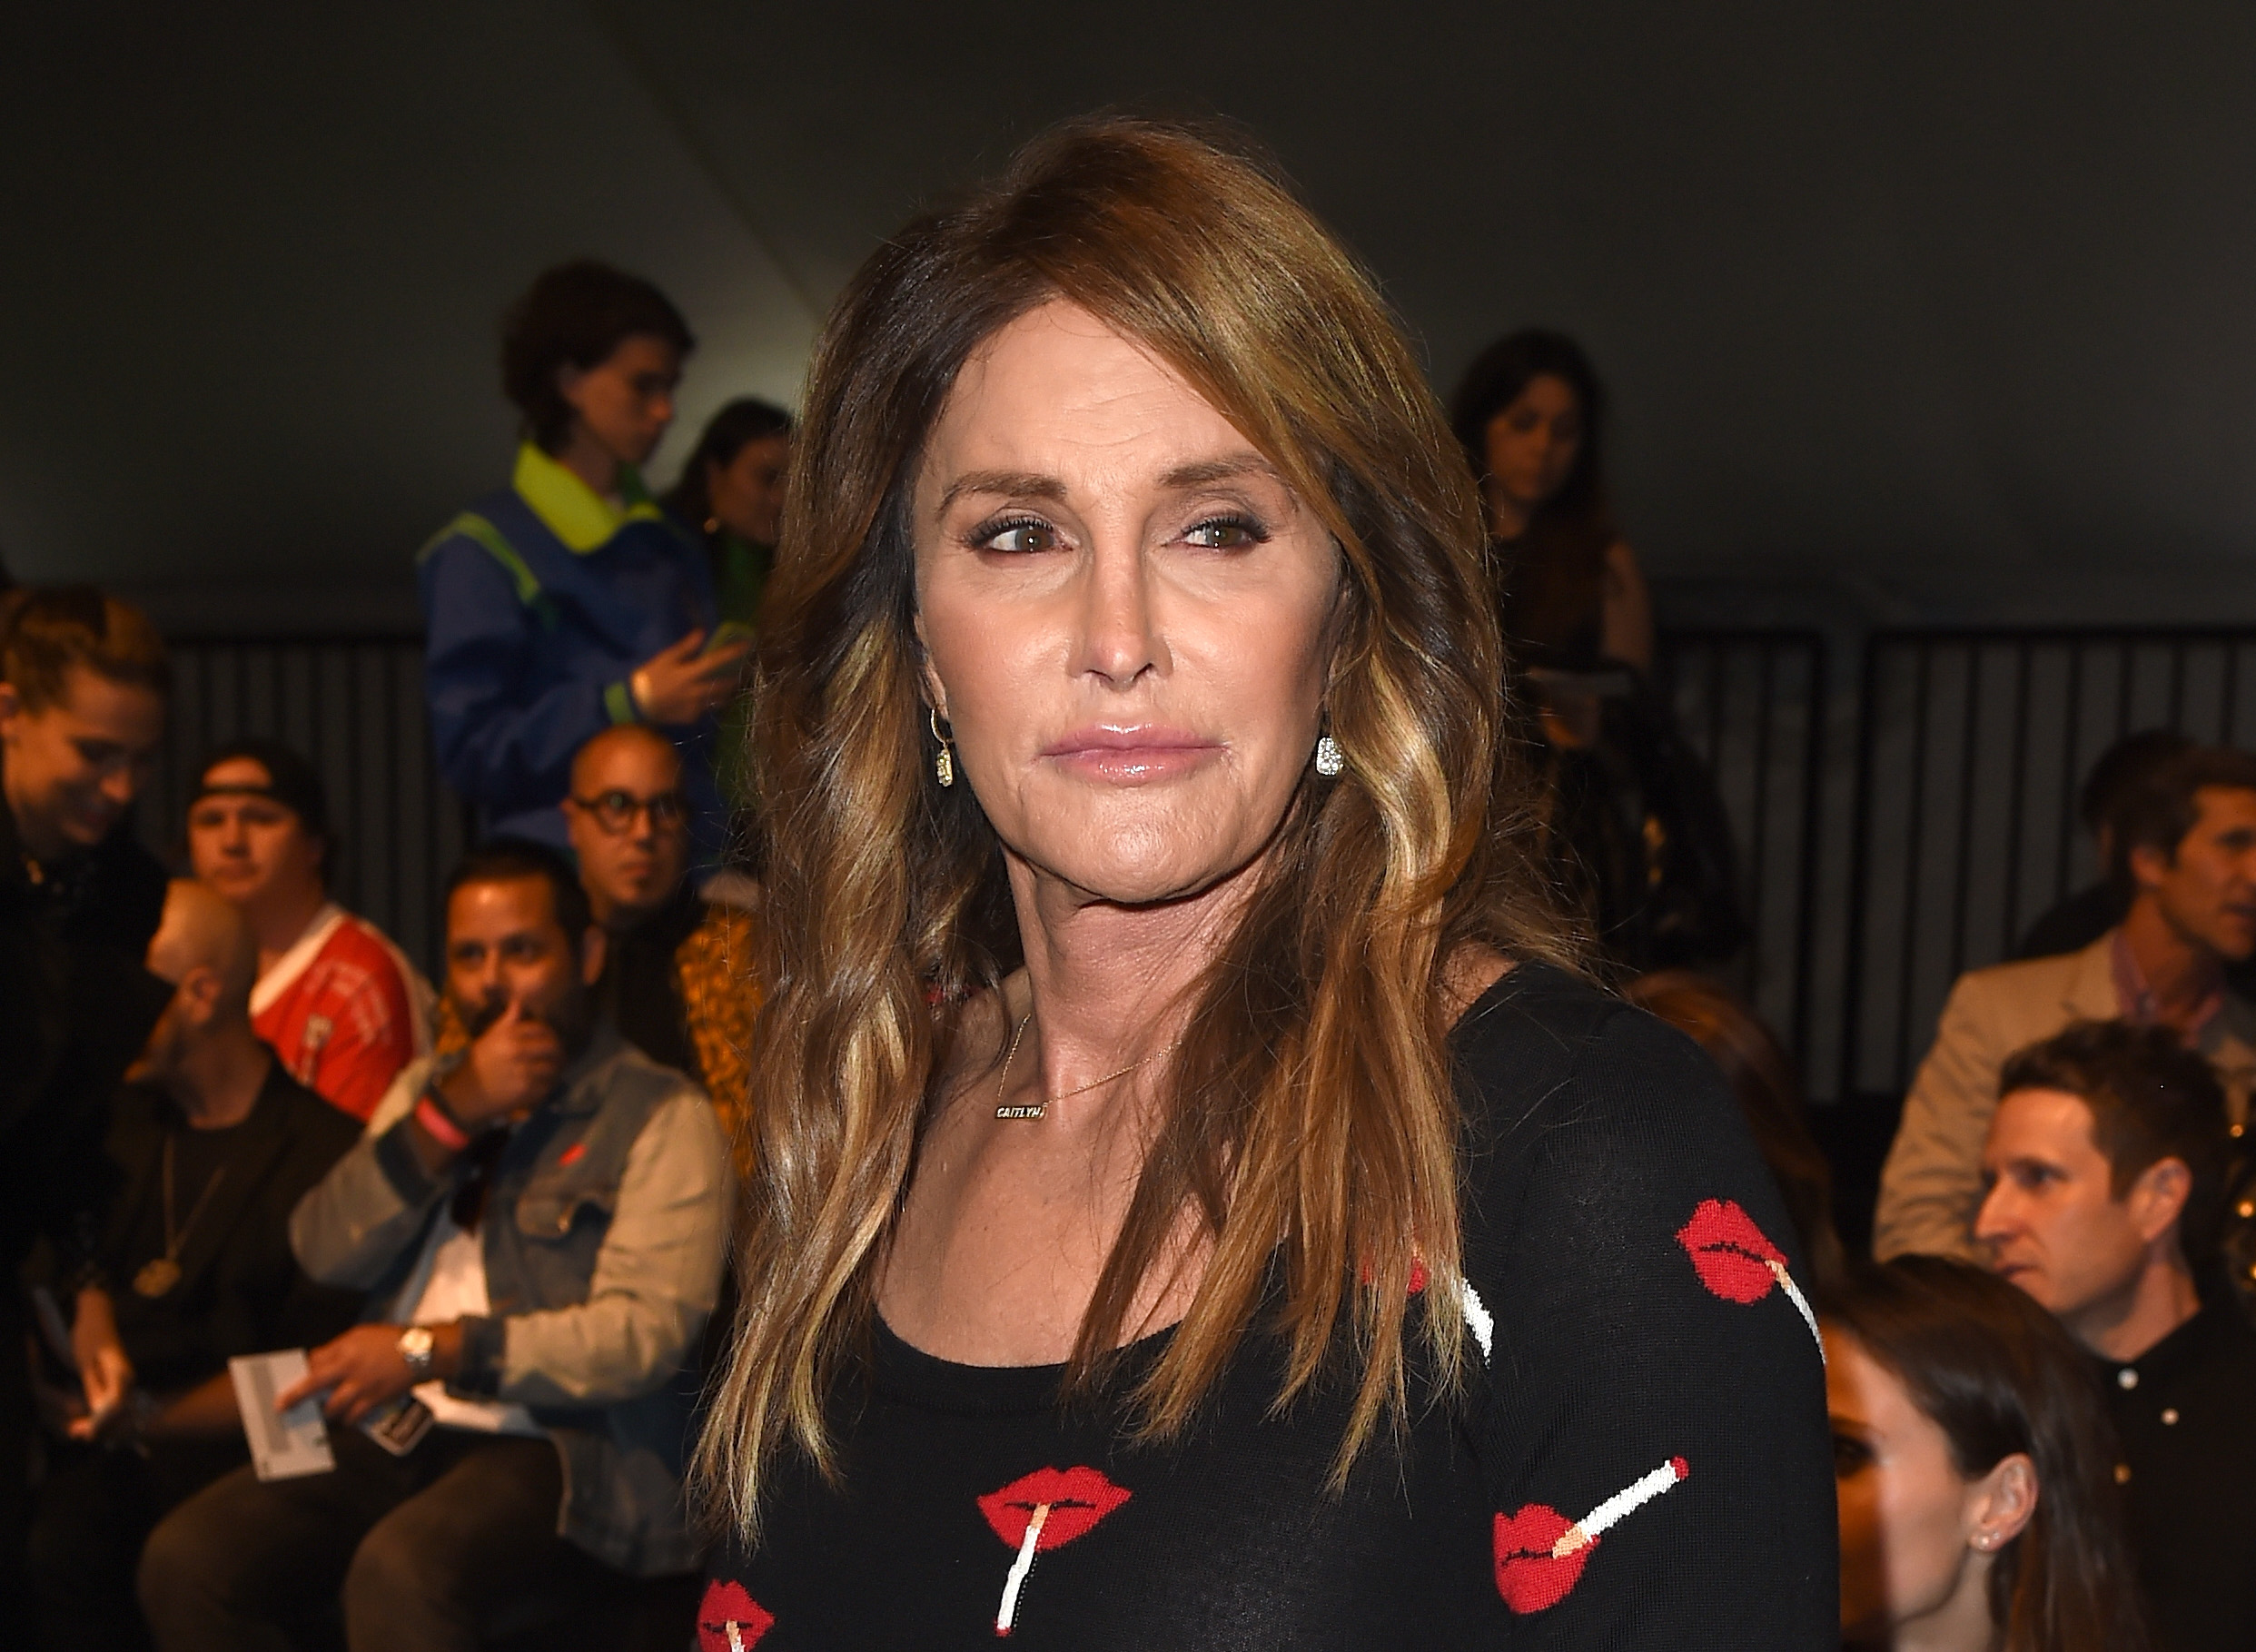 Caitlyn Jenner attends the Moschino Spring/Summer 17 Menswear and Women's Resort Collection during MADE LA on June 10.